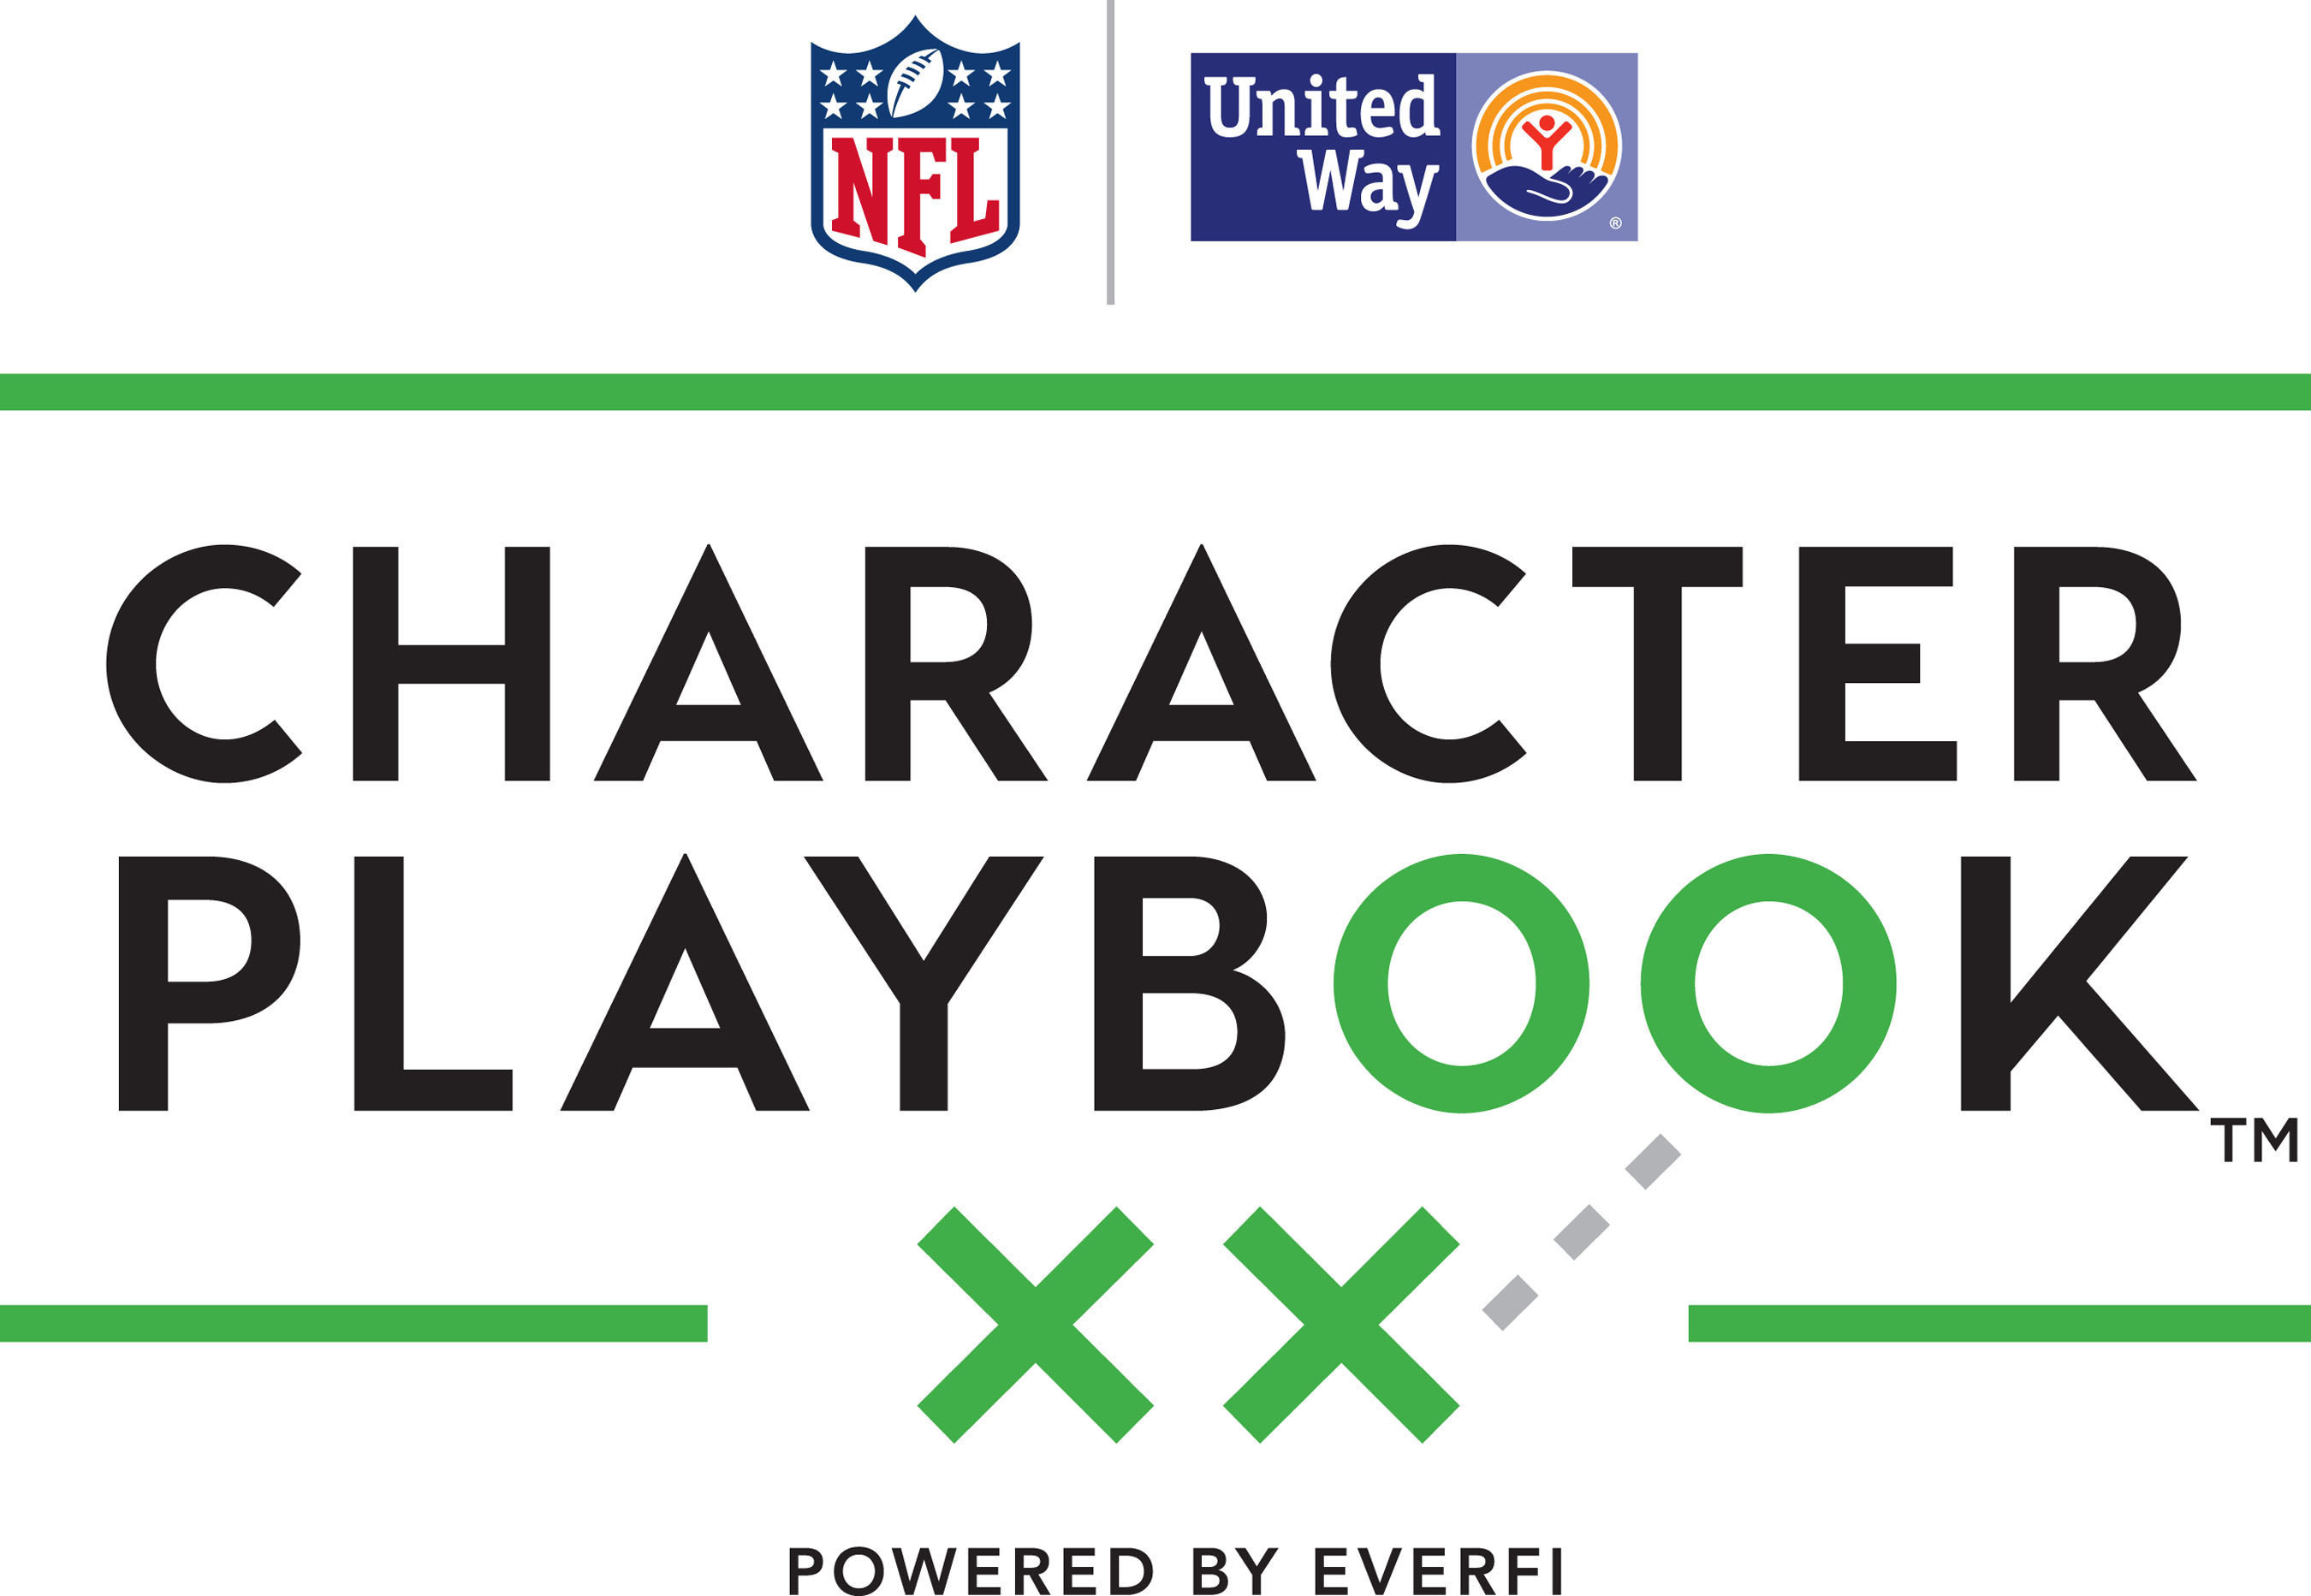 NFL & United Way Launch National Character Education Initiative